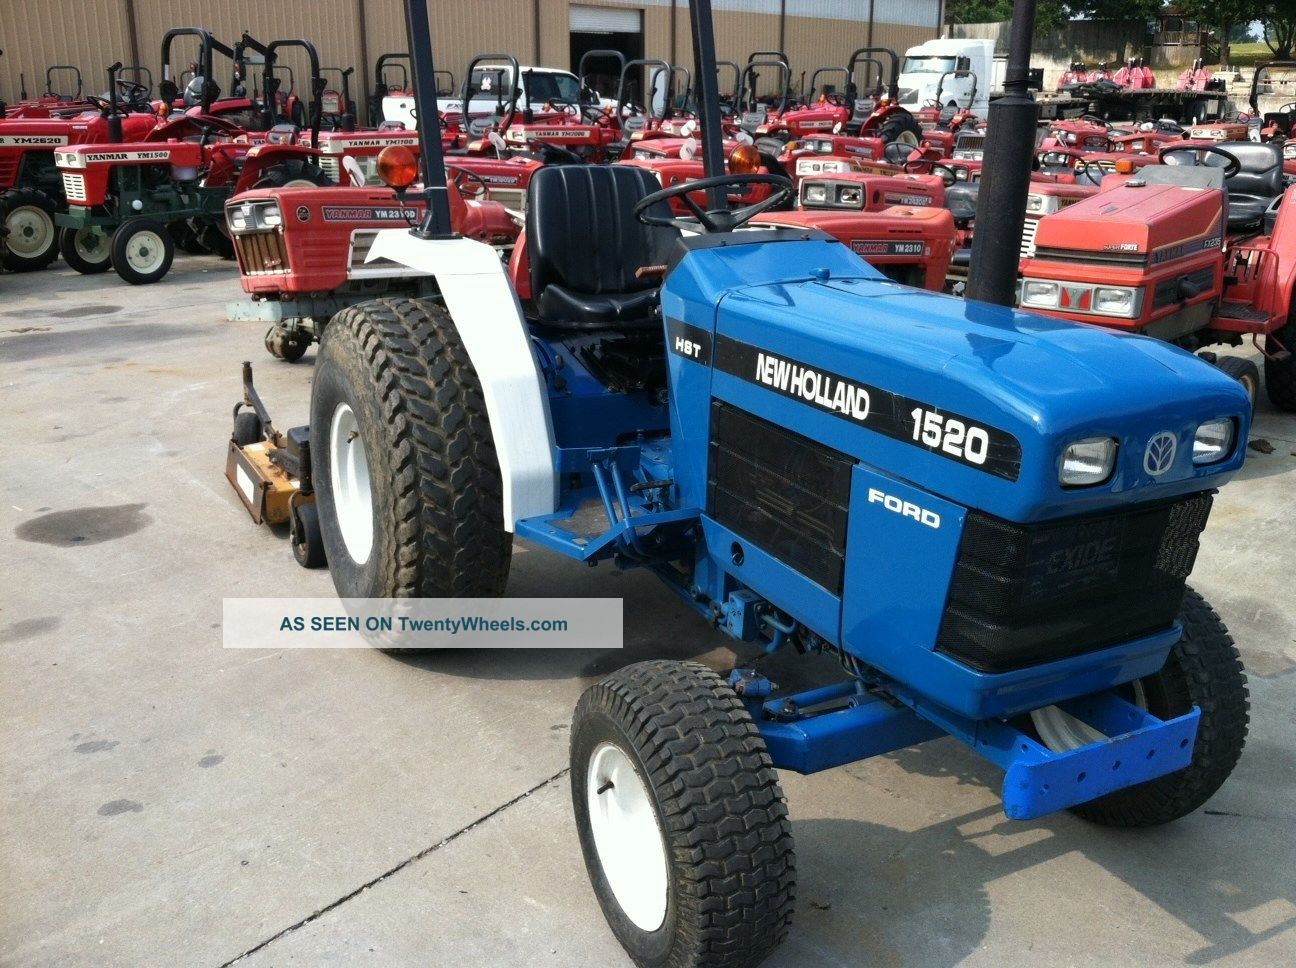 Ford Tractor Turf Tires : Ford holland hydrostactic with finish mower and